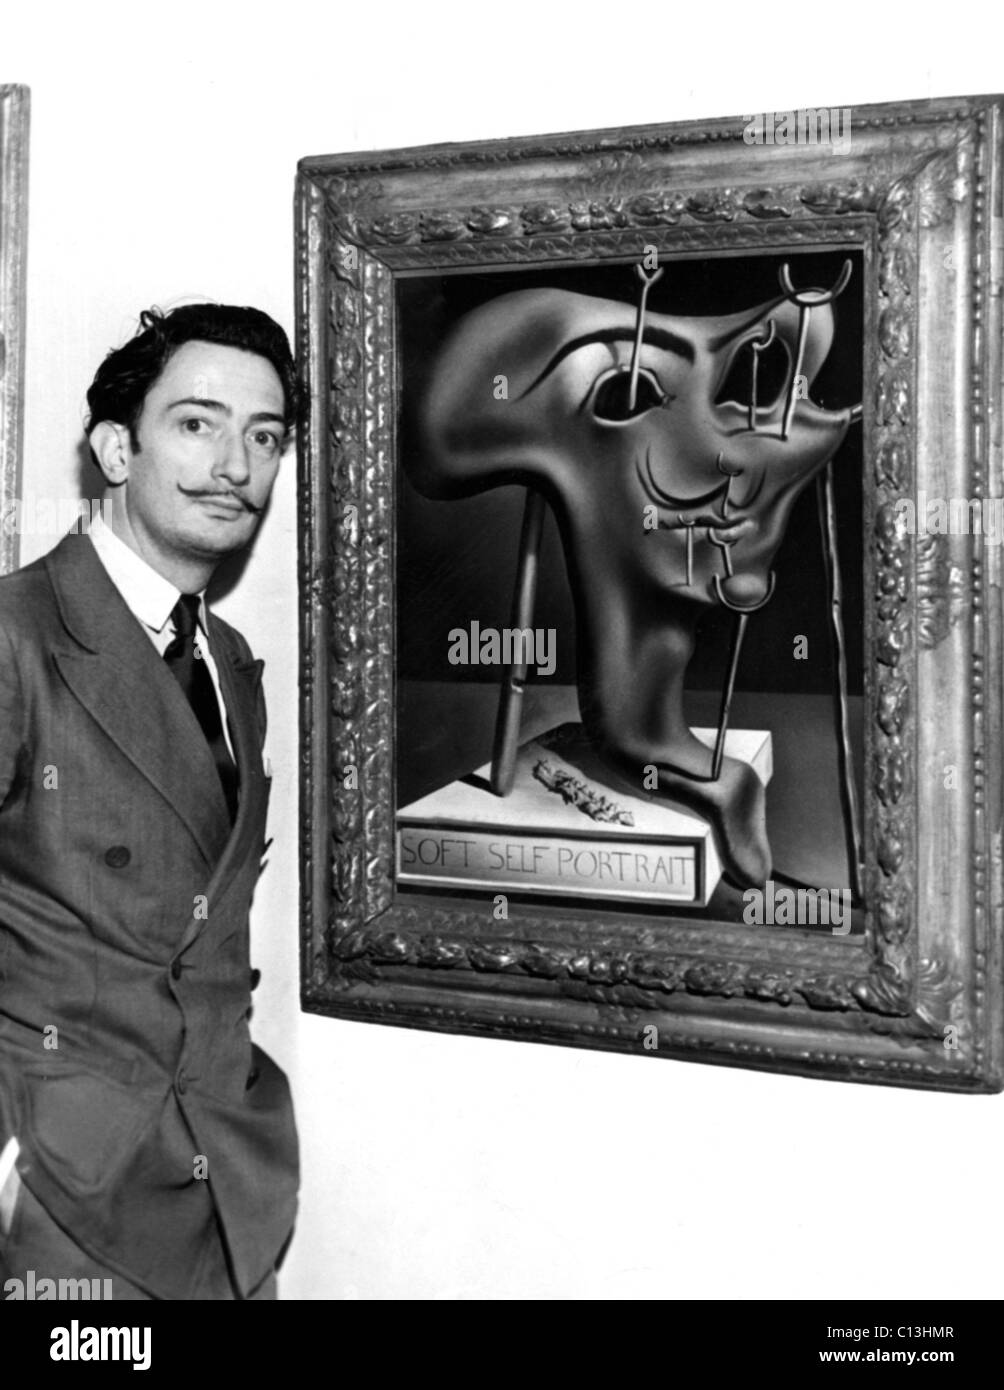 Salvador Dali, showing off his piece entitled 'Soft Self Portrait ...